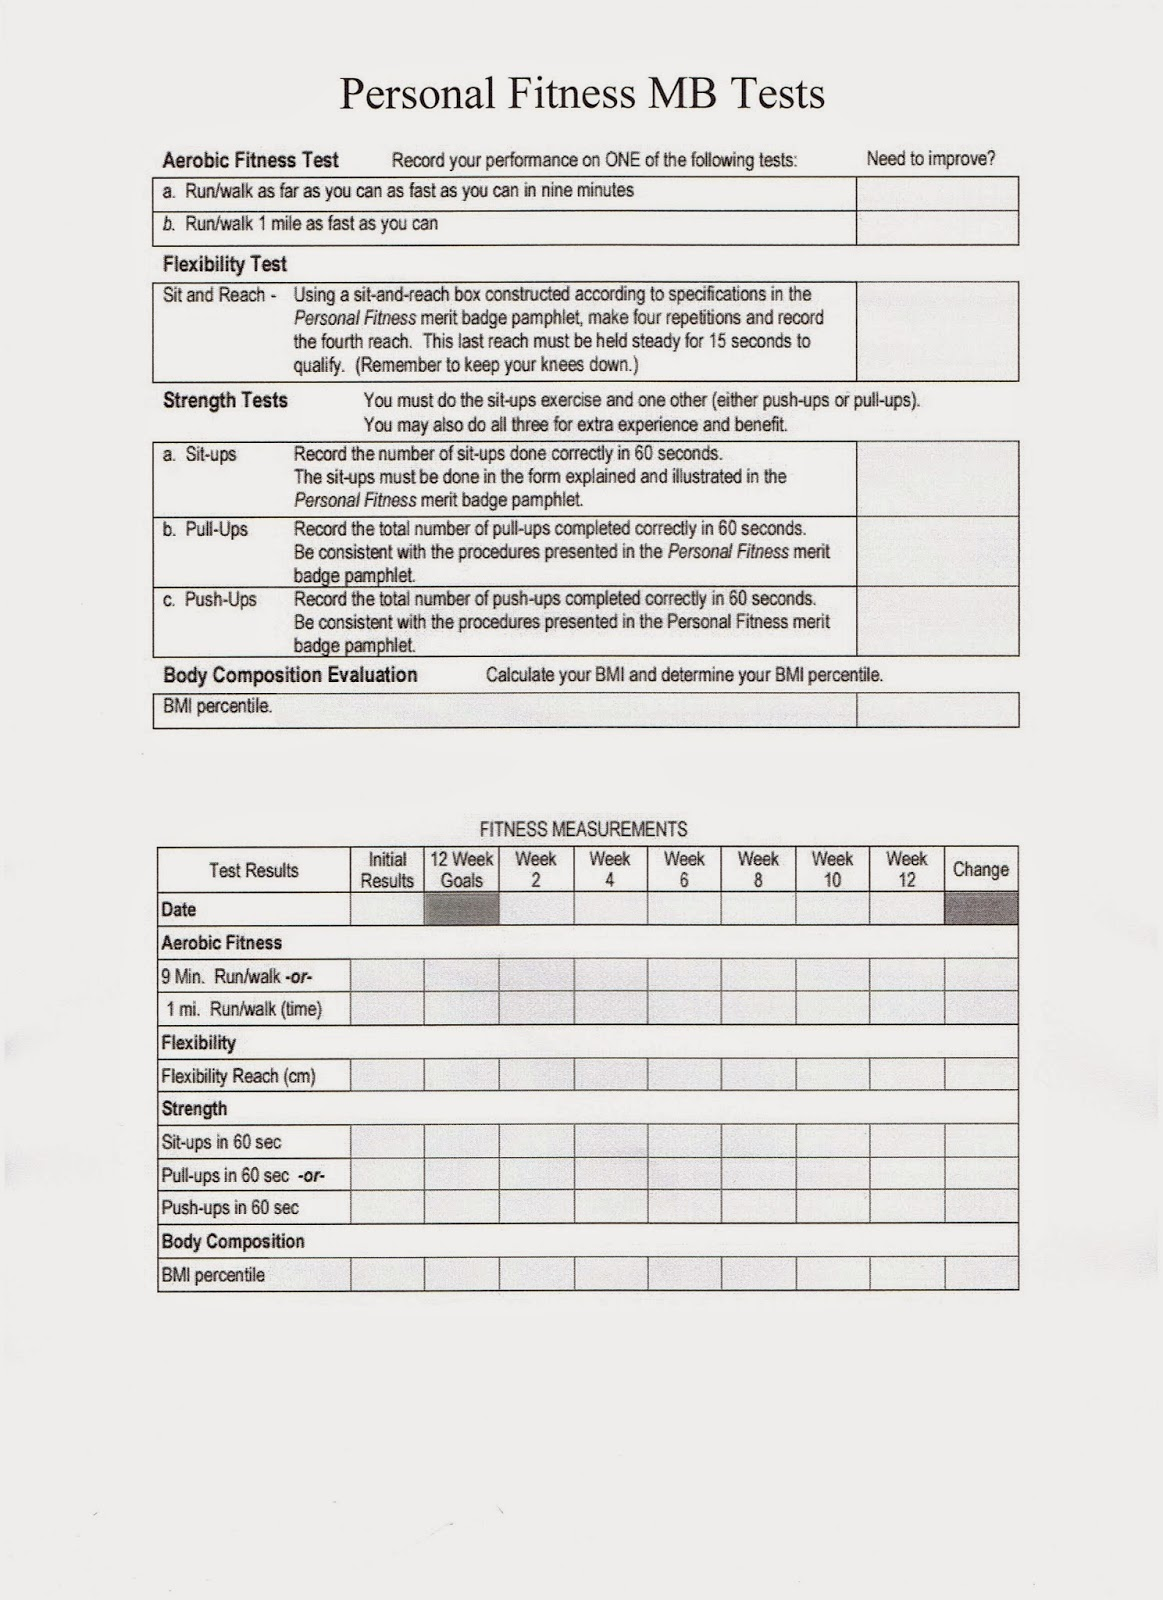 Uncategorized Personal Management Merit Badge Worksheet Answers 100 bsa personal management workbook troop 215 gallery100 read book meritbadge pdf online fitness merit